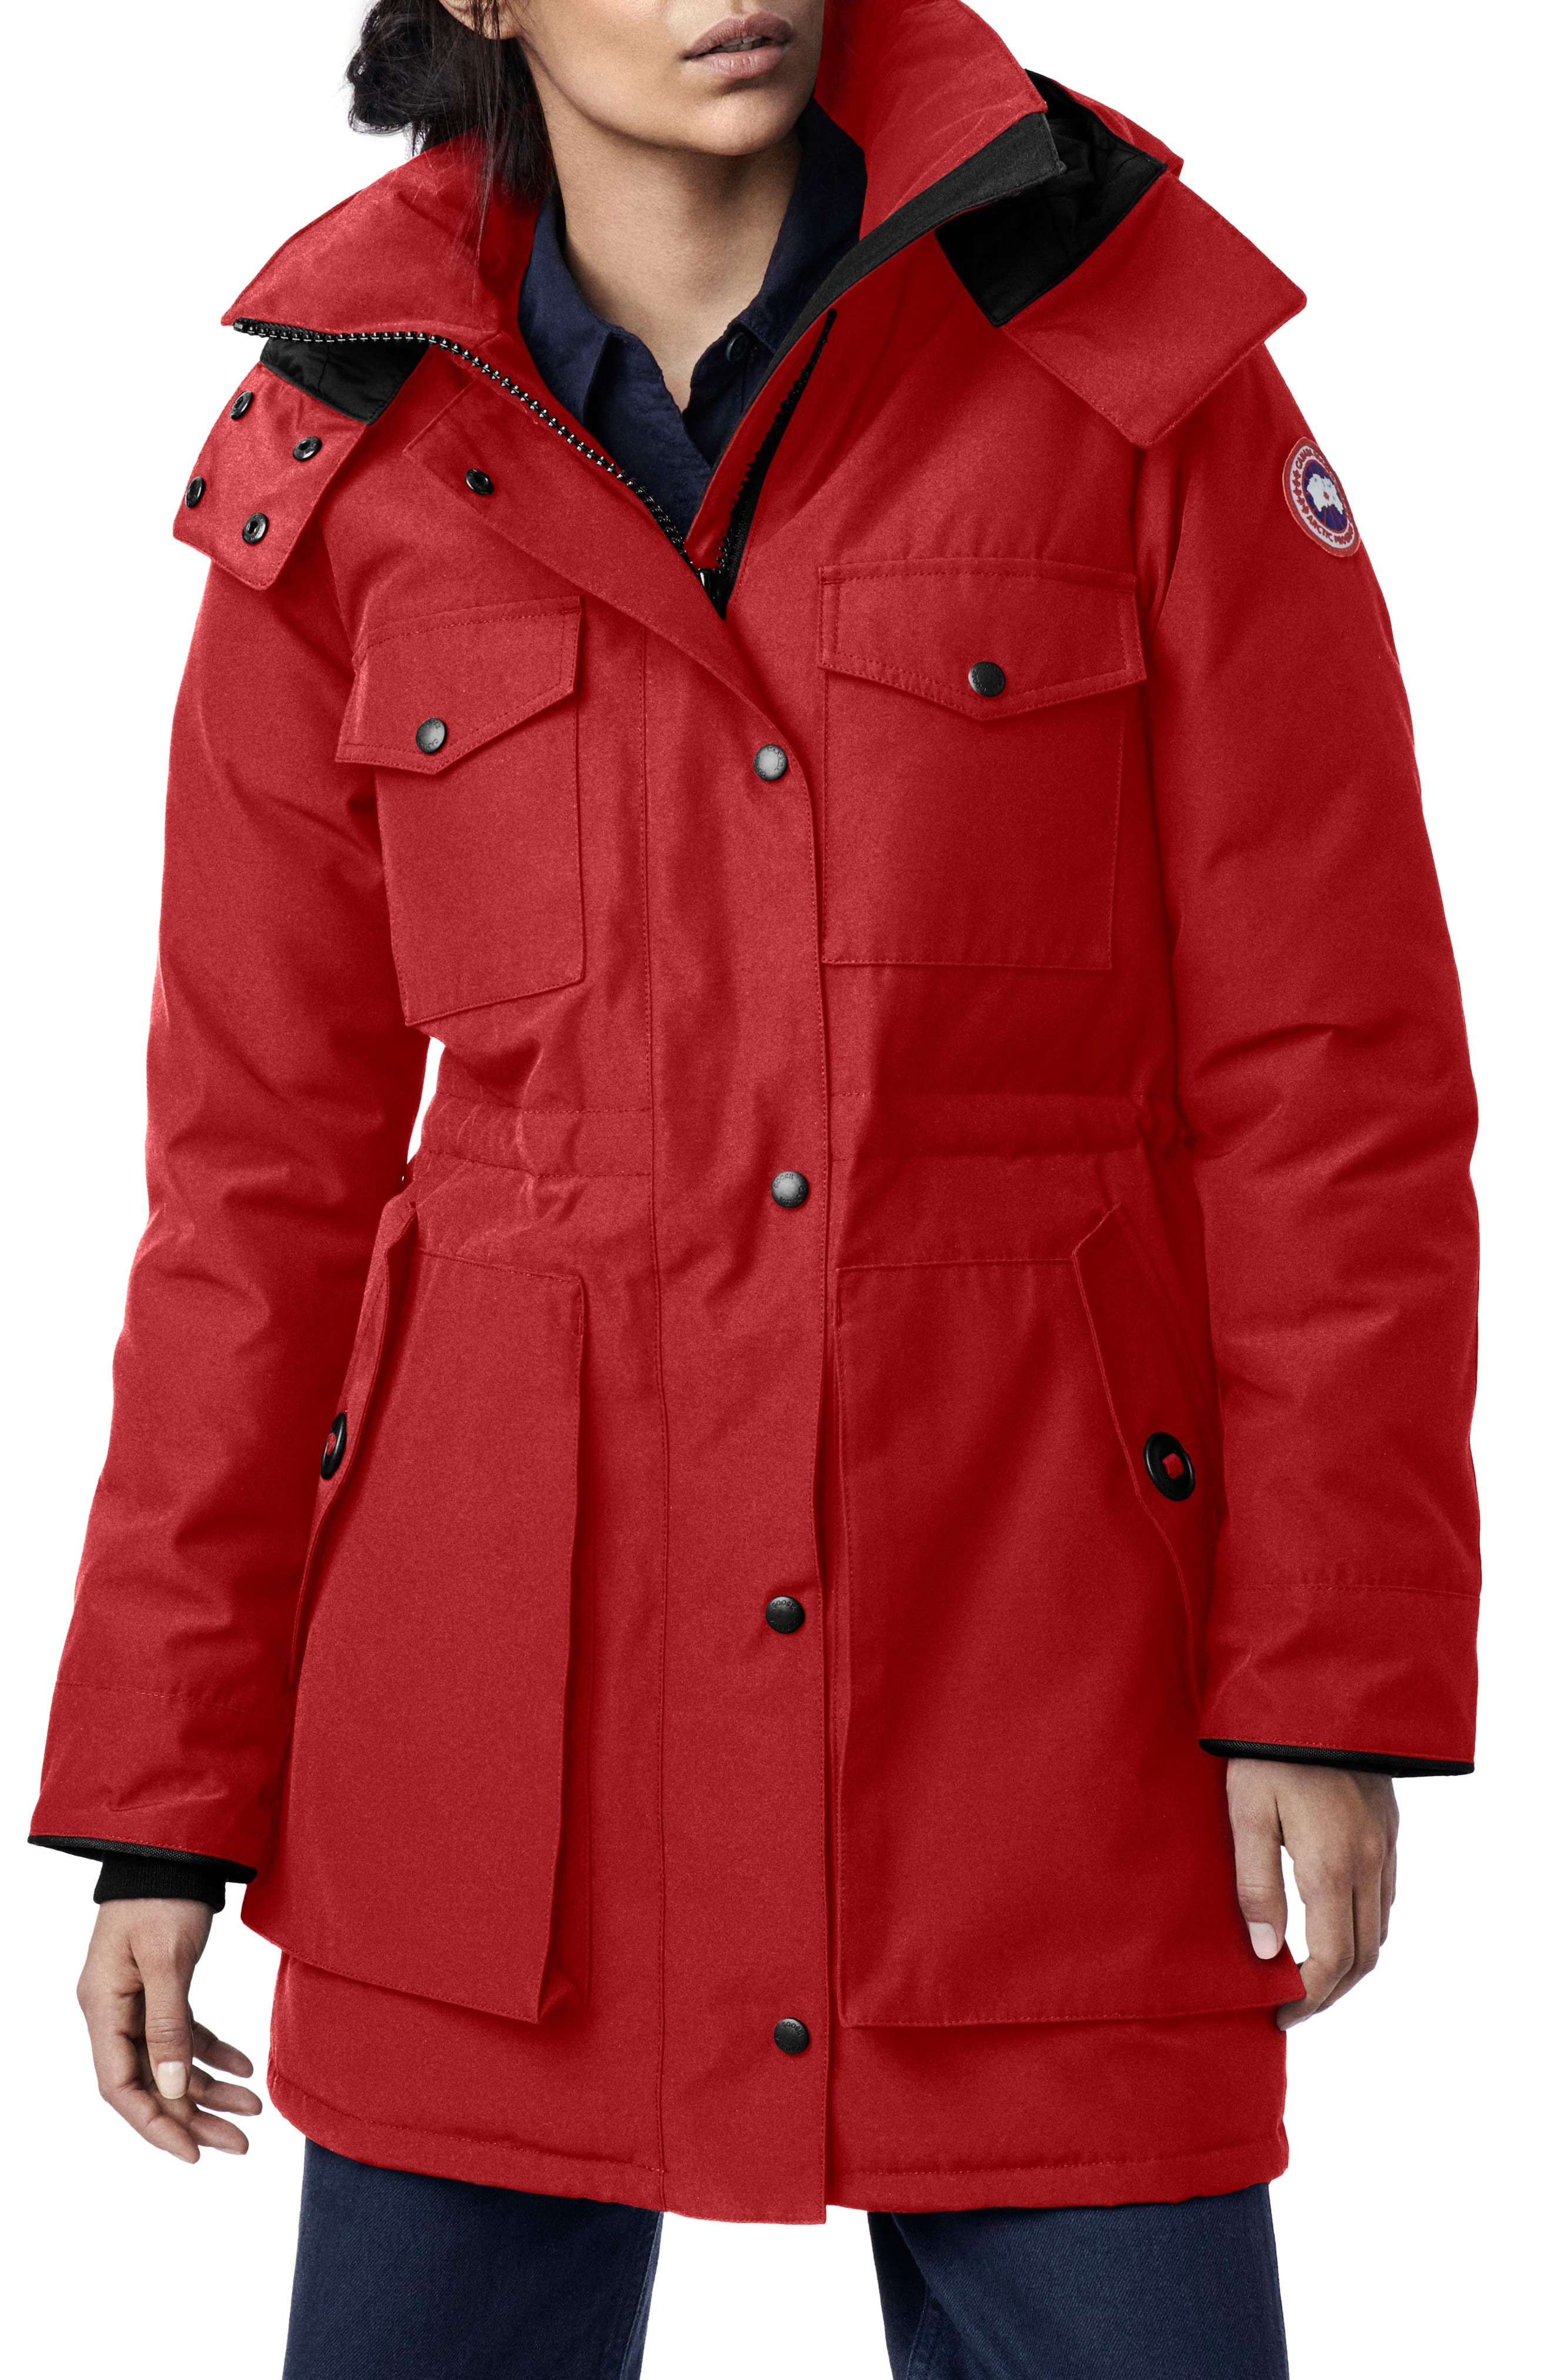 Canada Goose Gabriola Water Resistant Arctic Tech 625 Fill Power Down Parka, (14-16) - Red